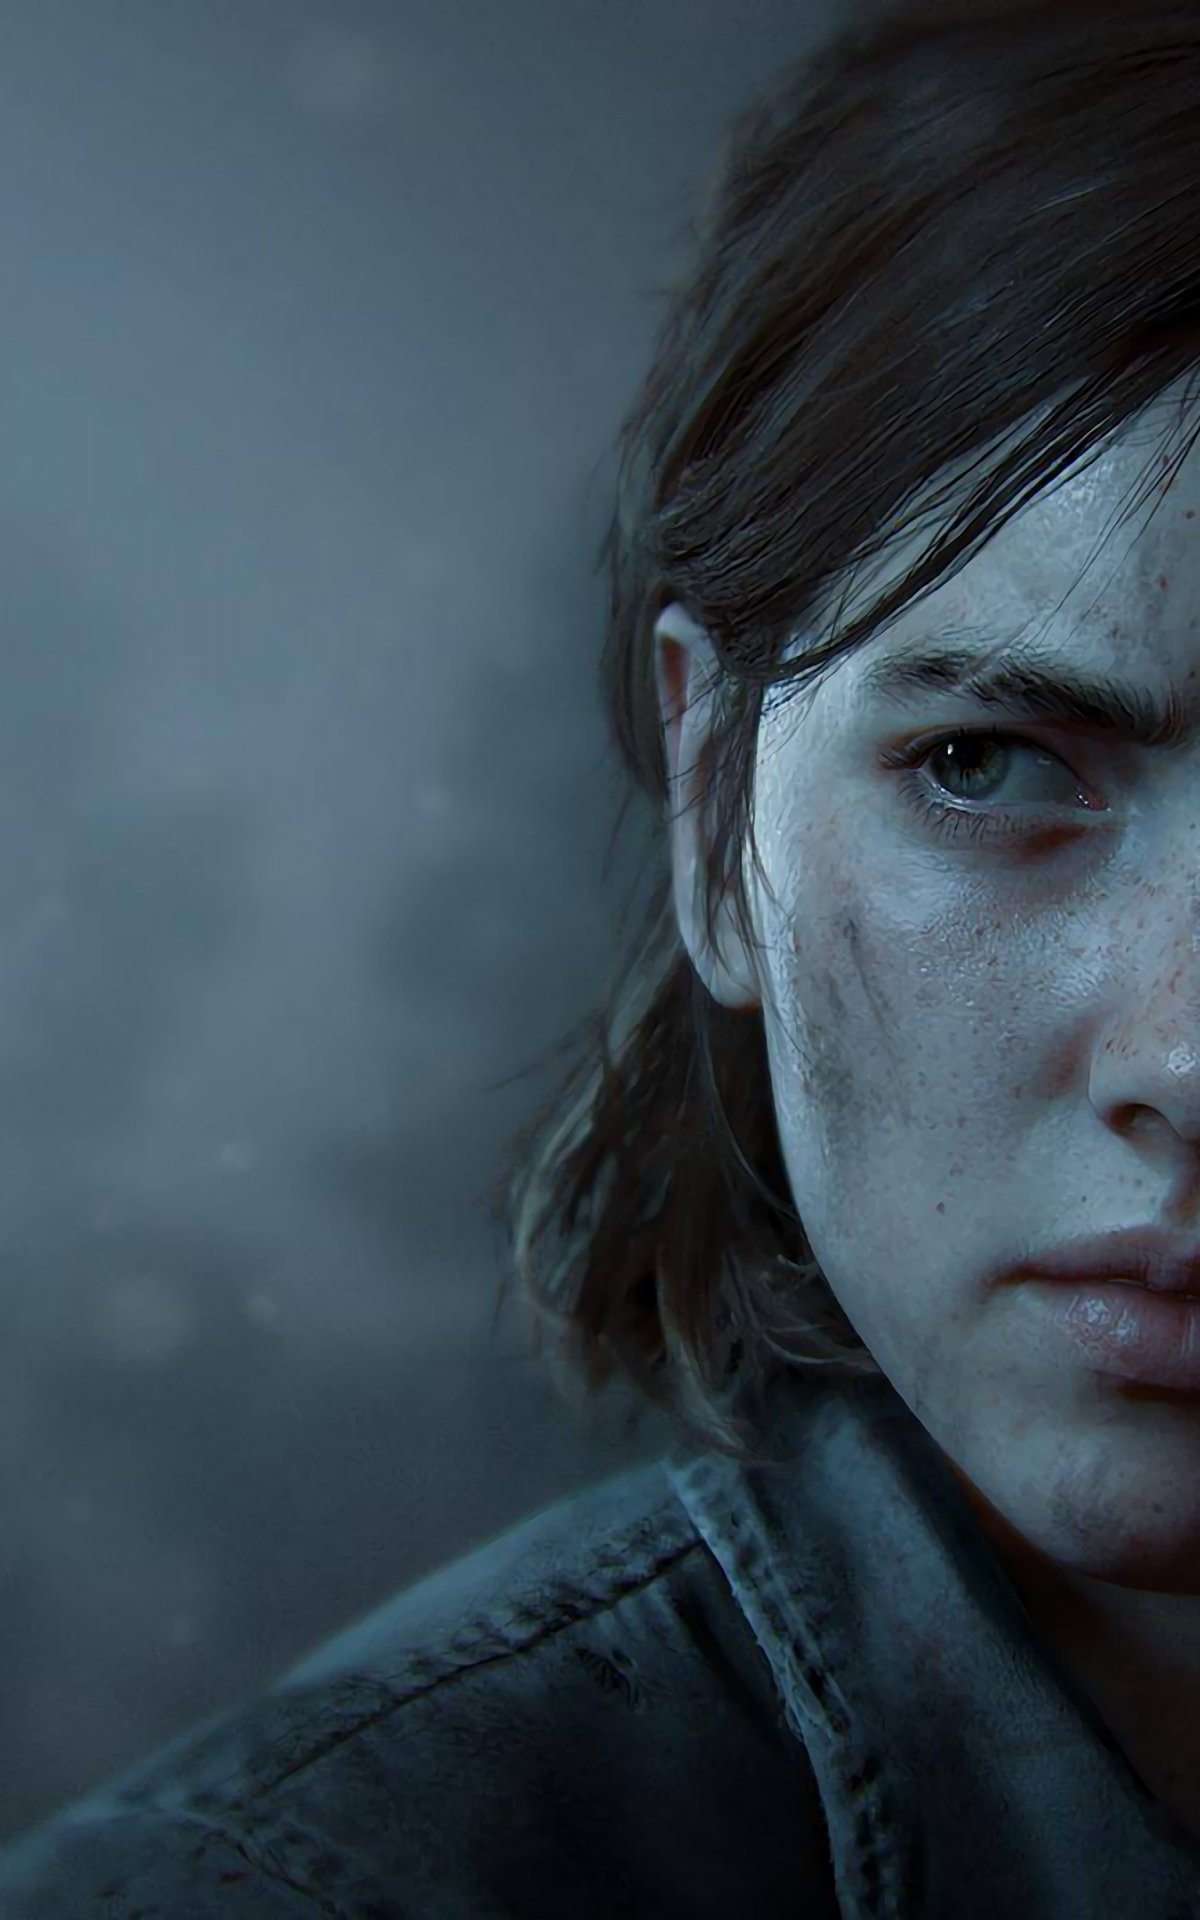 download The Last of Us 2 Wallpapers Top The Last of Us 2 1200x1920